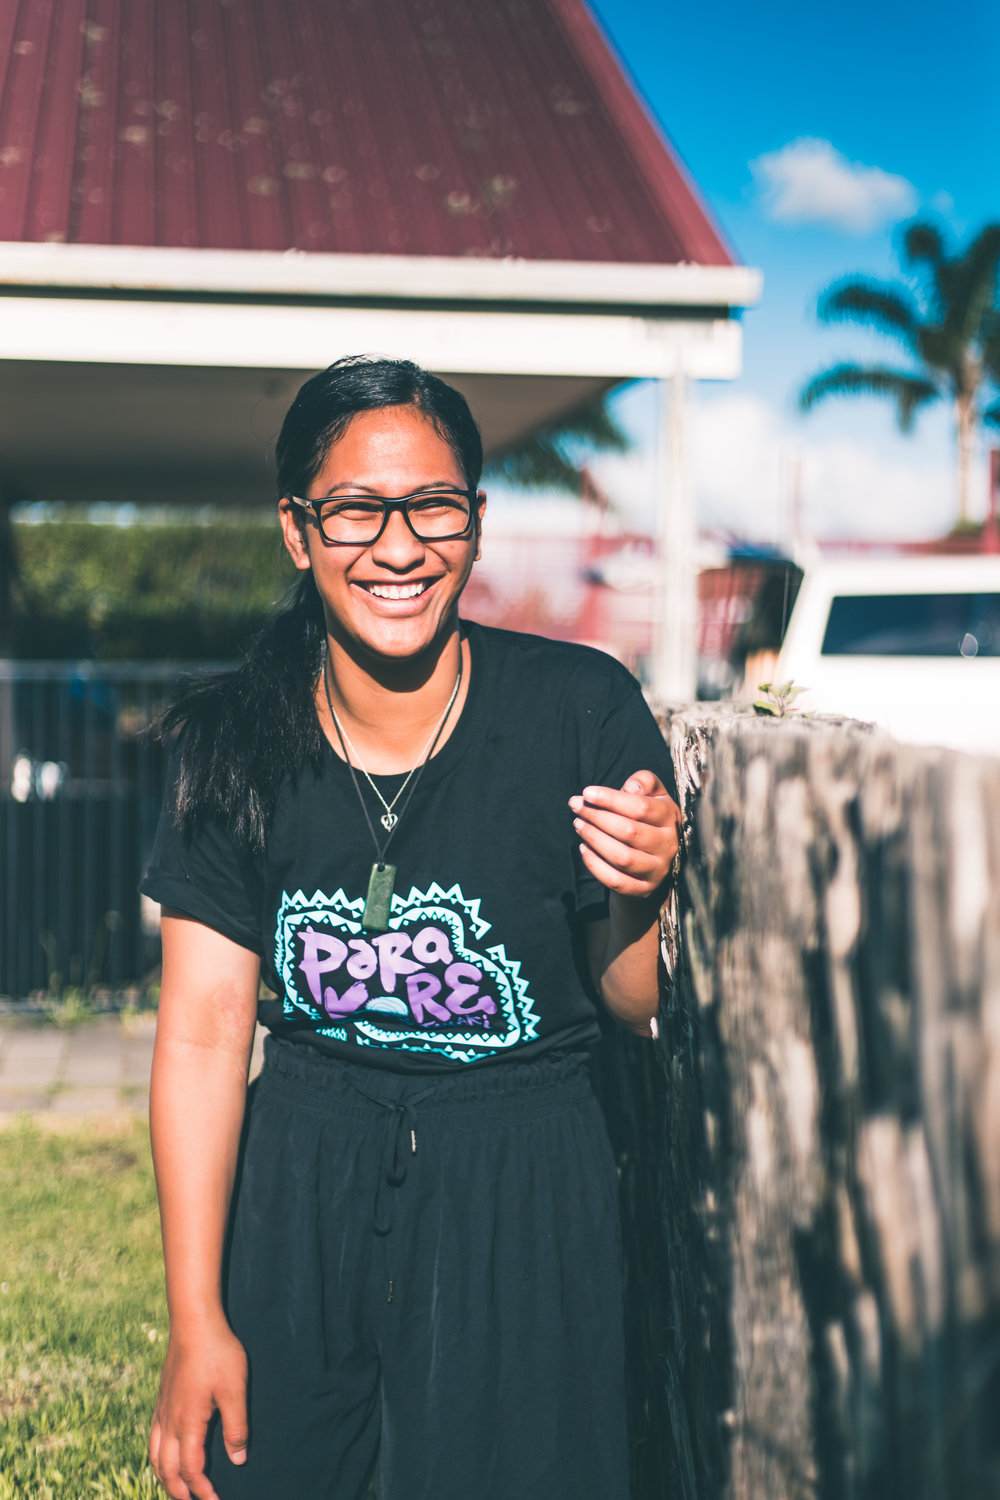 Awhina-Tawera Takuira-Mita - Kia Ora. Ko Awhina-Tawera toku ingoa, he uri tenei no Te Arawa.Next year I'll be a Year 13 student at Te Wharekura o Manurewa.At the end of April 2018 I came to OMG Tech, not knowing anything about the organisation or programme.Throughout the programme I have gained technology and computer skills, created a bond with people I usually wouldn't associate with and have created so many wonderful and lifelong memories. Now that the programme is coming to an end, I will leave with lifelong friends, an amazing experience, and a new family.